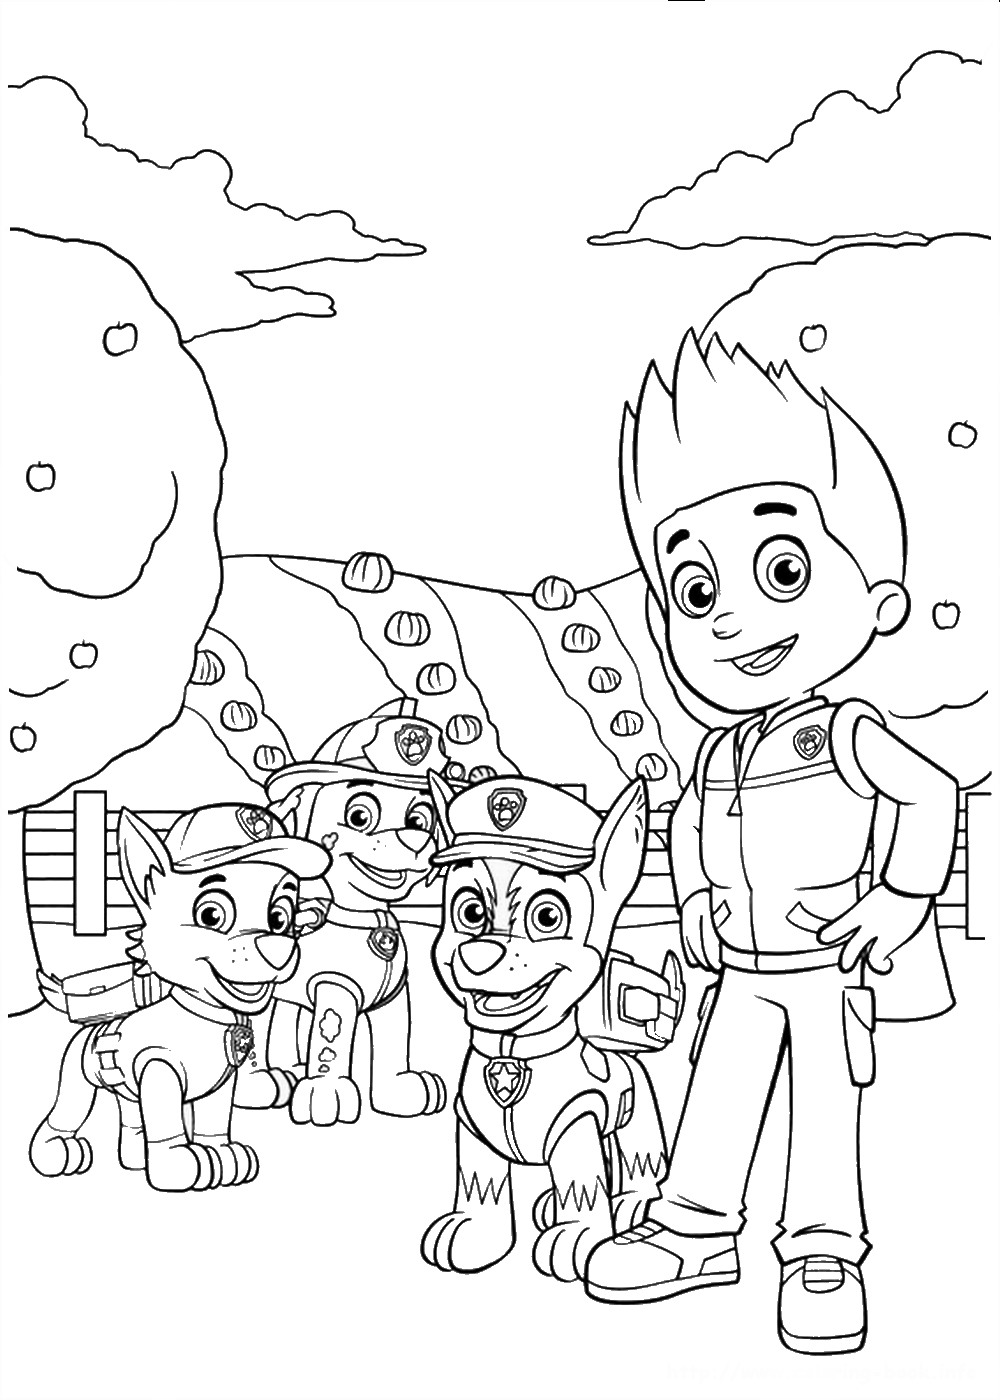 coloring images paw patrol paw patrol coloring pages printable free coloring sheets patrol images coloring paw